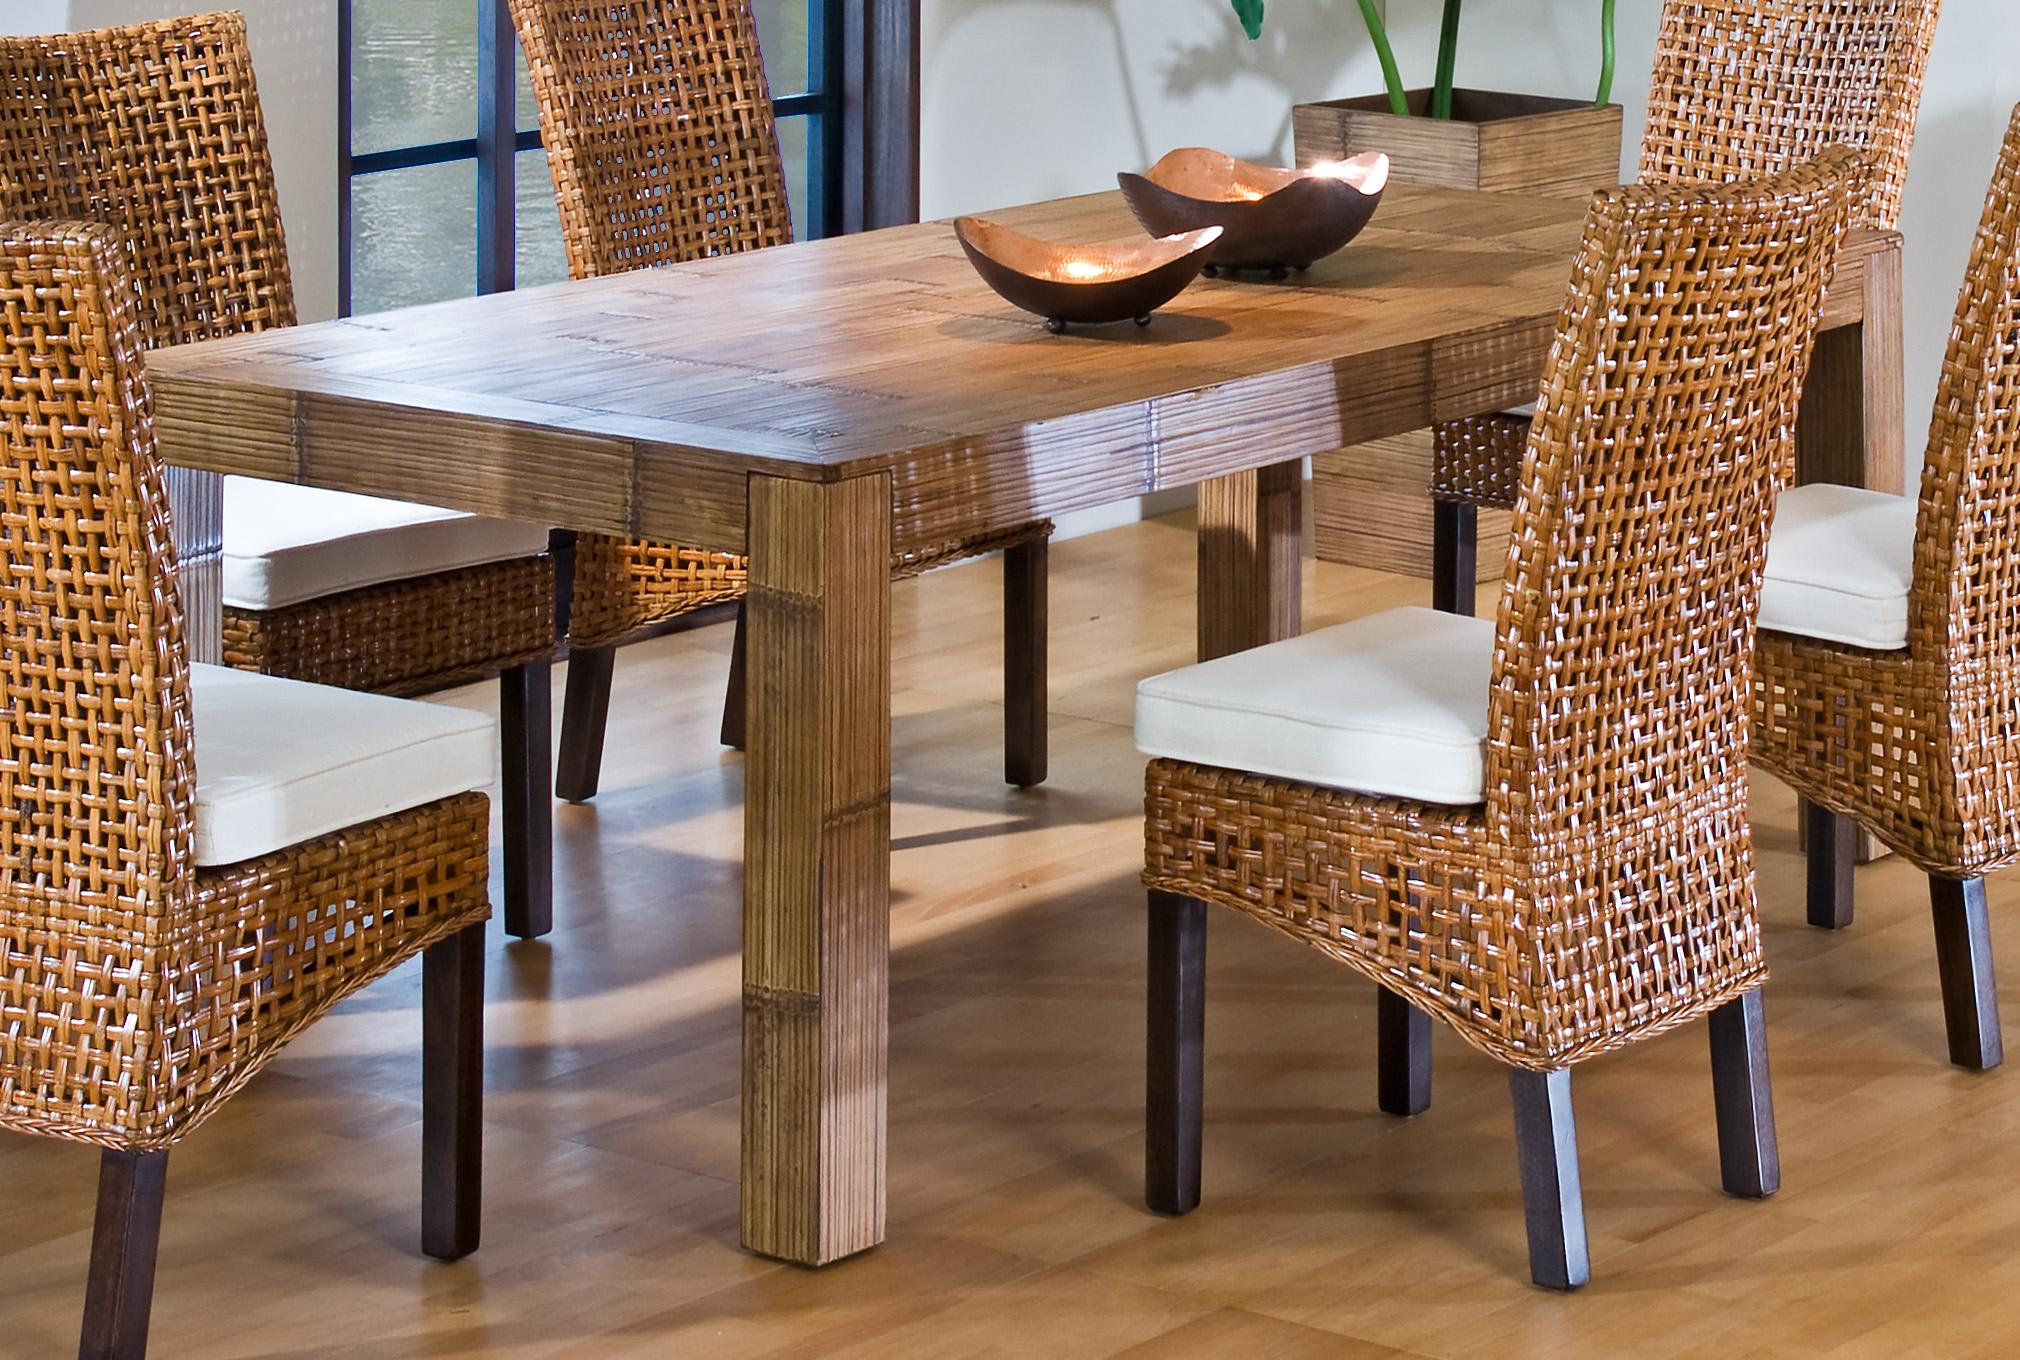 Image of: wicker dining chairs and table